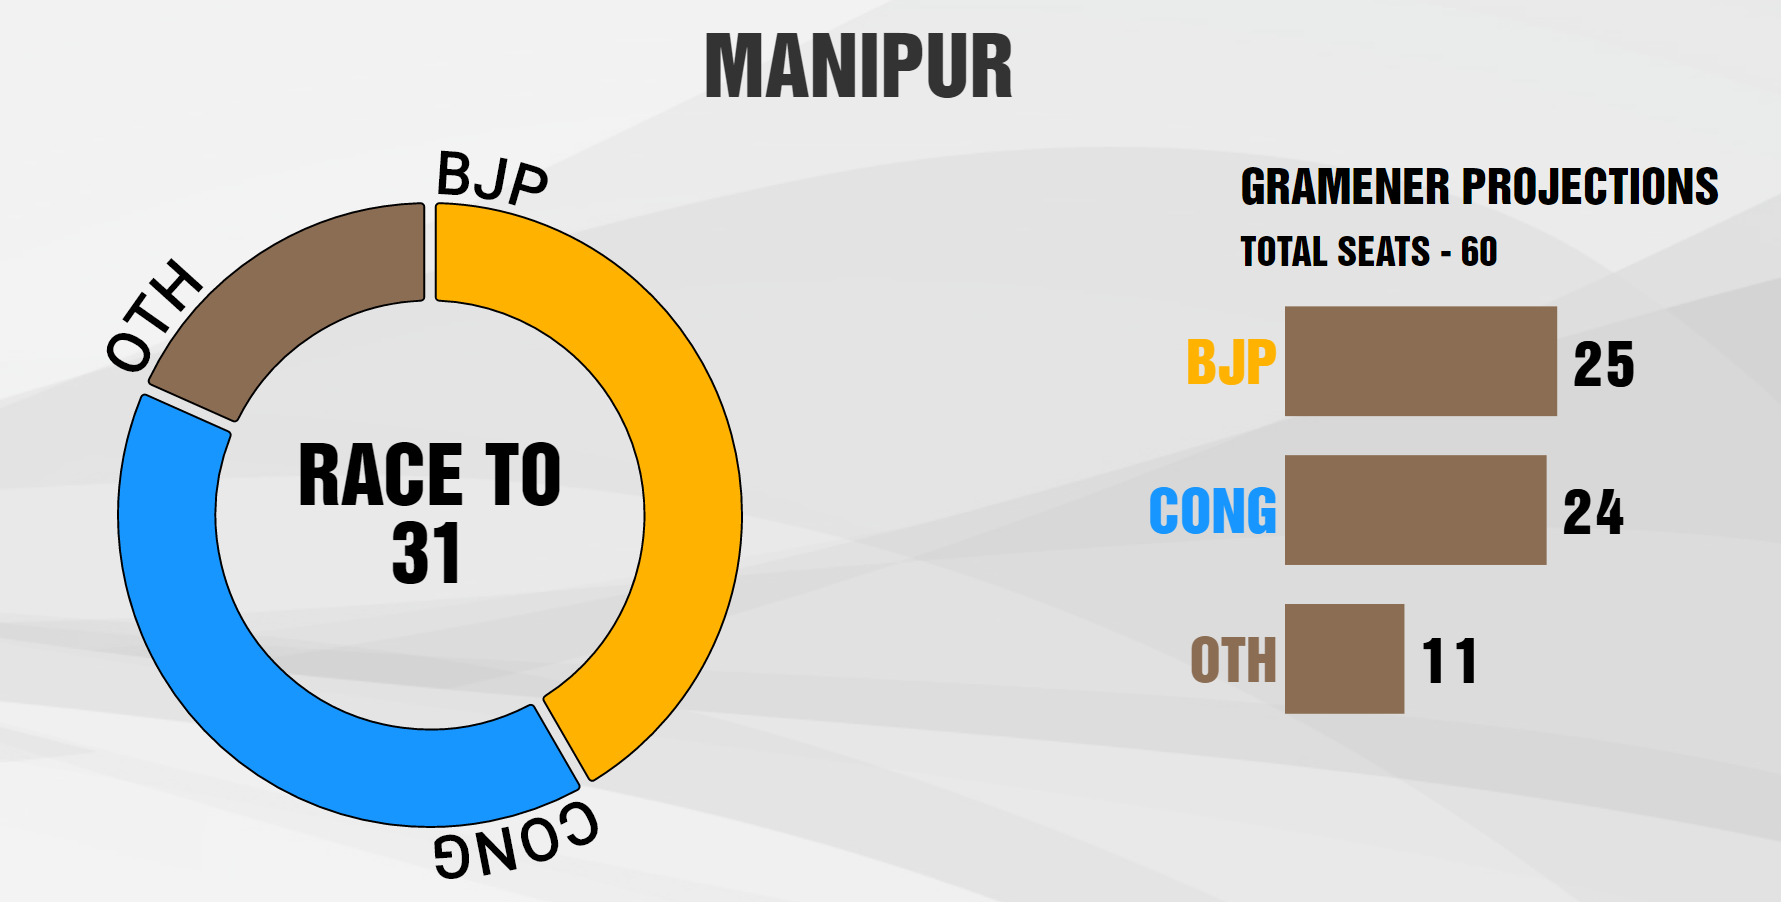 network18-gramener-projections-manipur